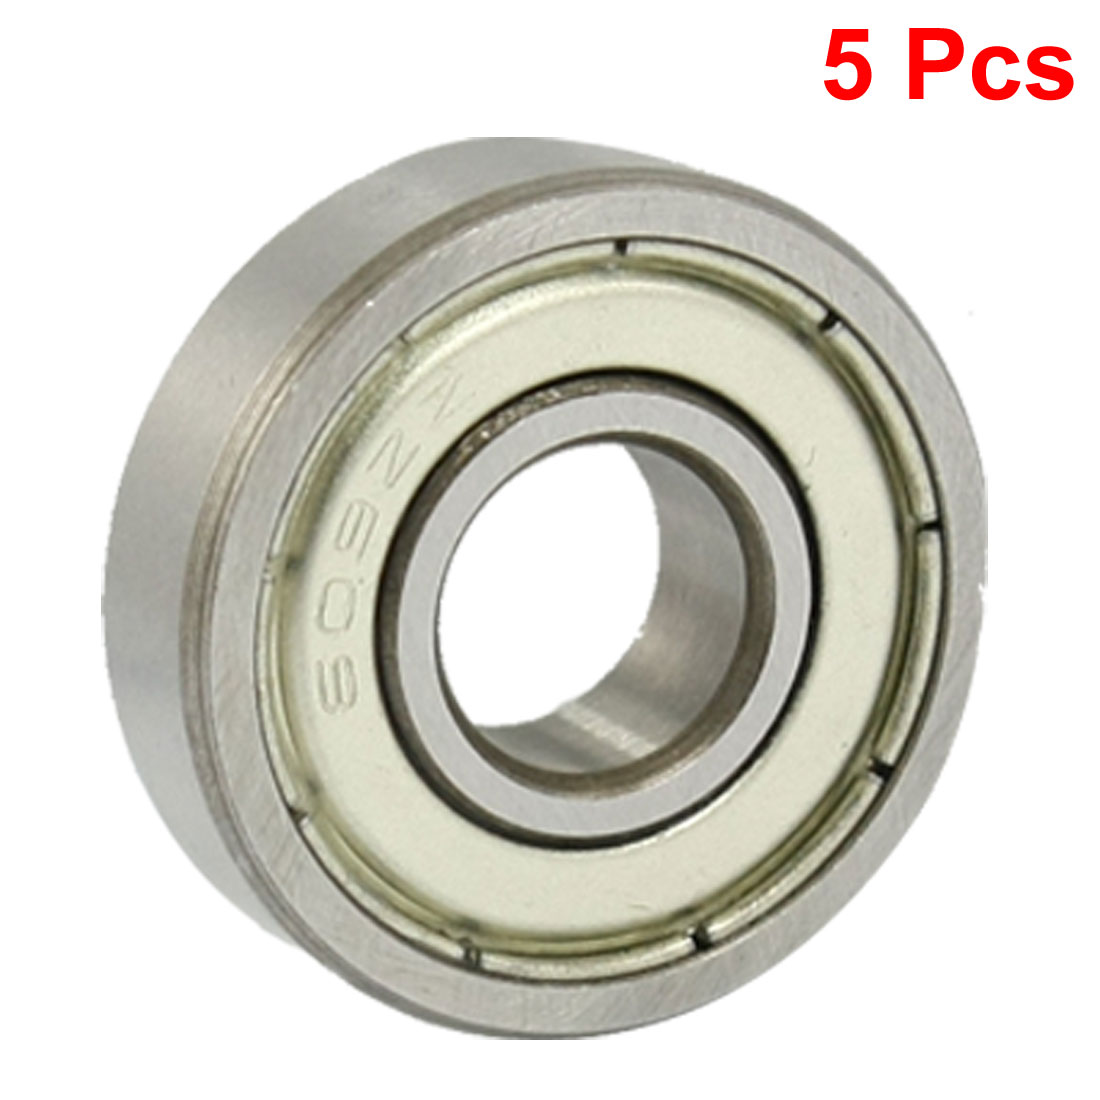 5 Pcs 609ZZ 9mm x 24mm x 7mm Double Shield Deep Groove Radial Ball Bearings